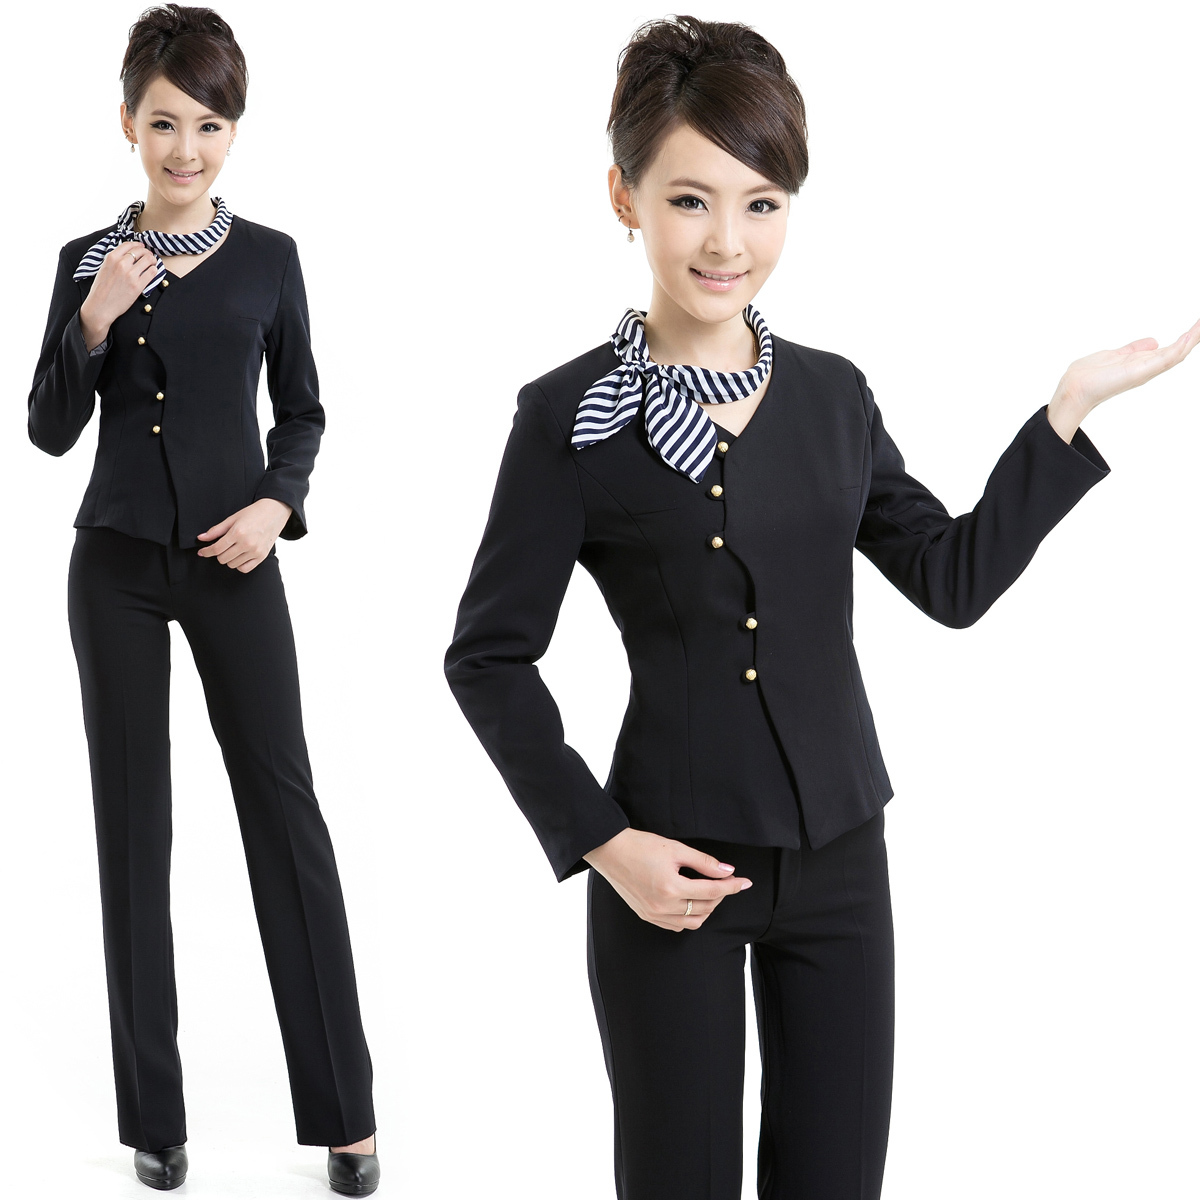 Pant Suits Novelty Blue Slim Fashion Professional Female Uniform Style Business Work Suits With Tops And Pants Ladies Office Trousers Sets To Assure Years Of Trouble-Free Service